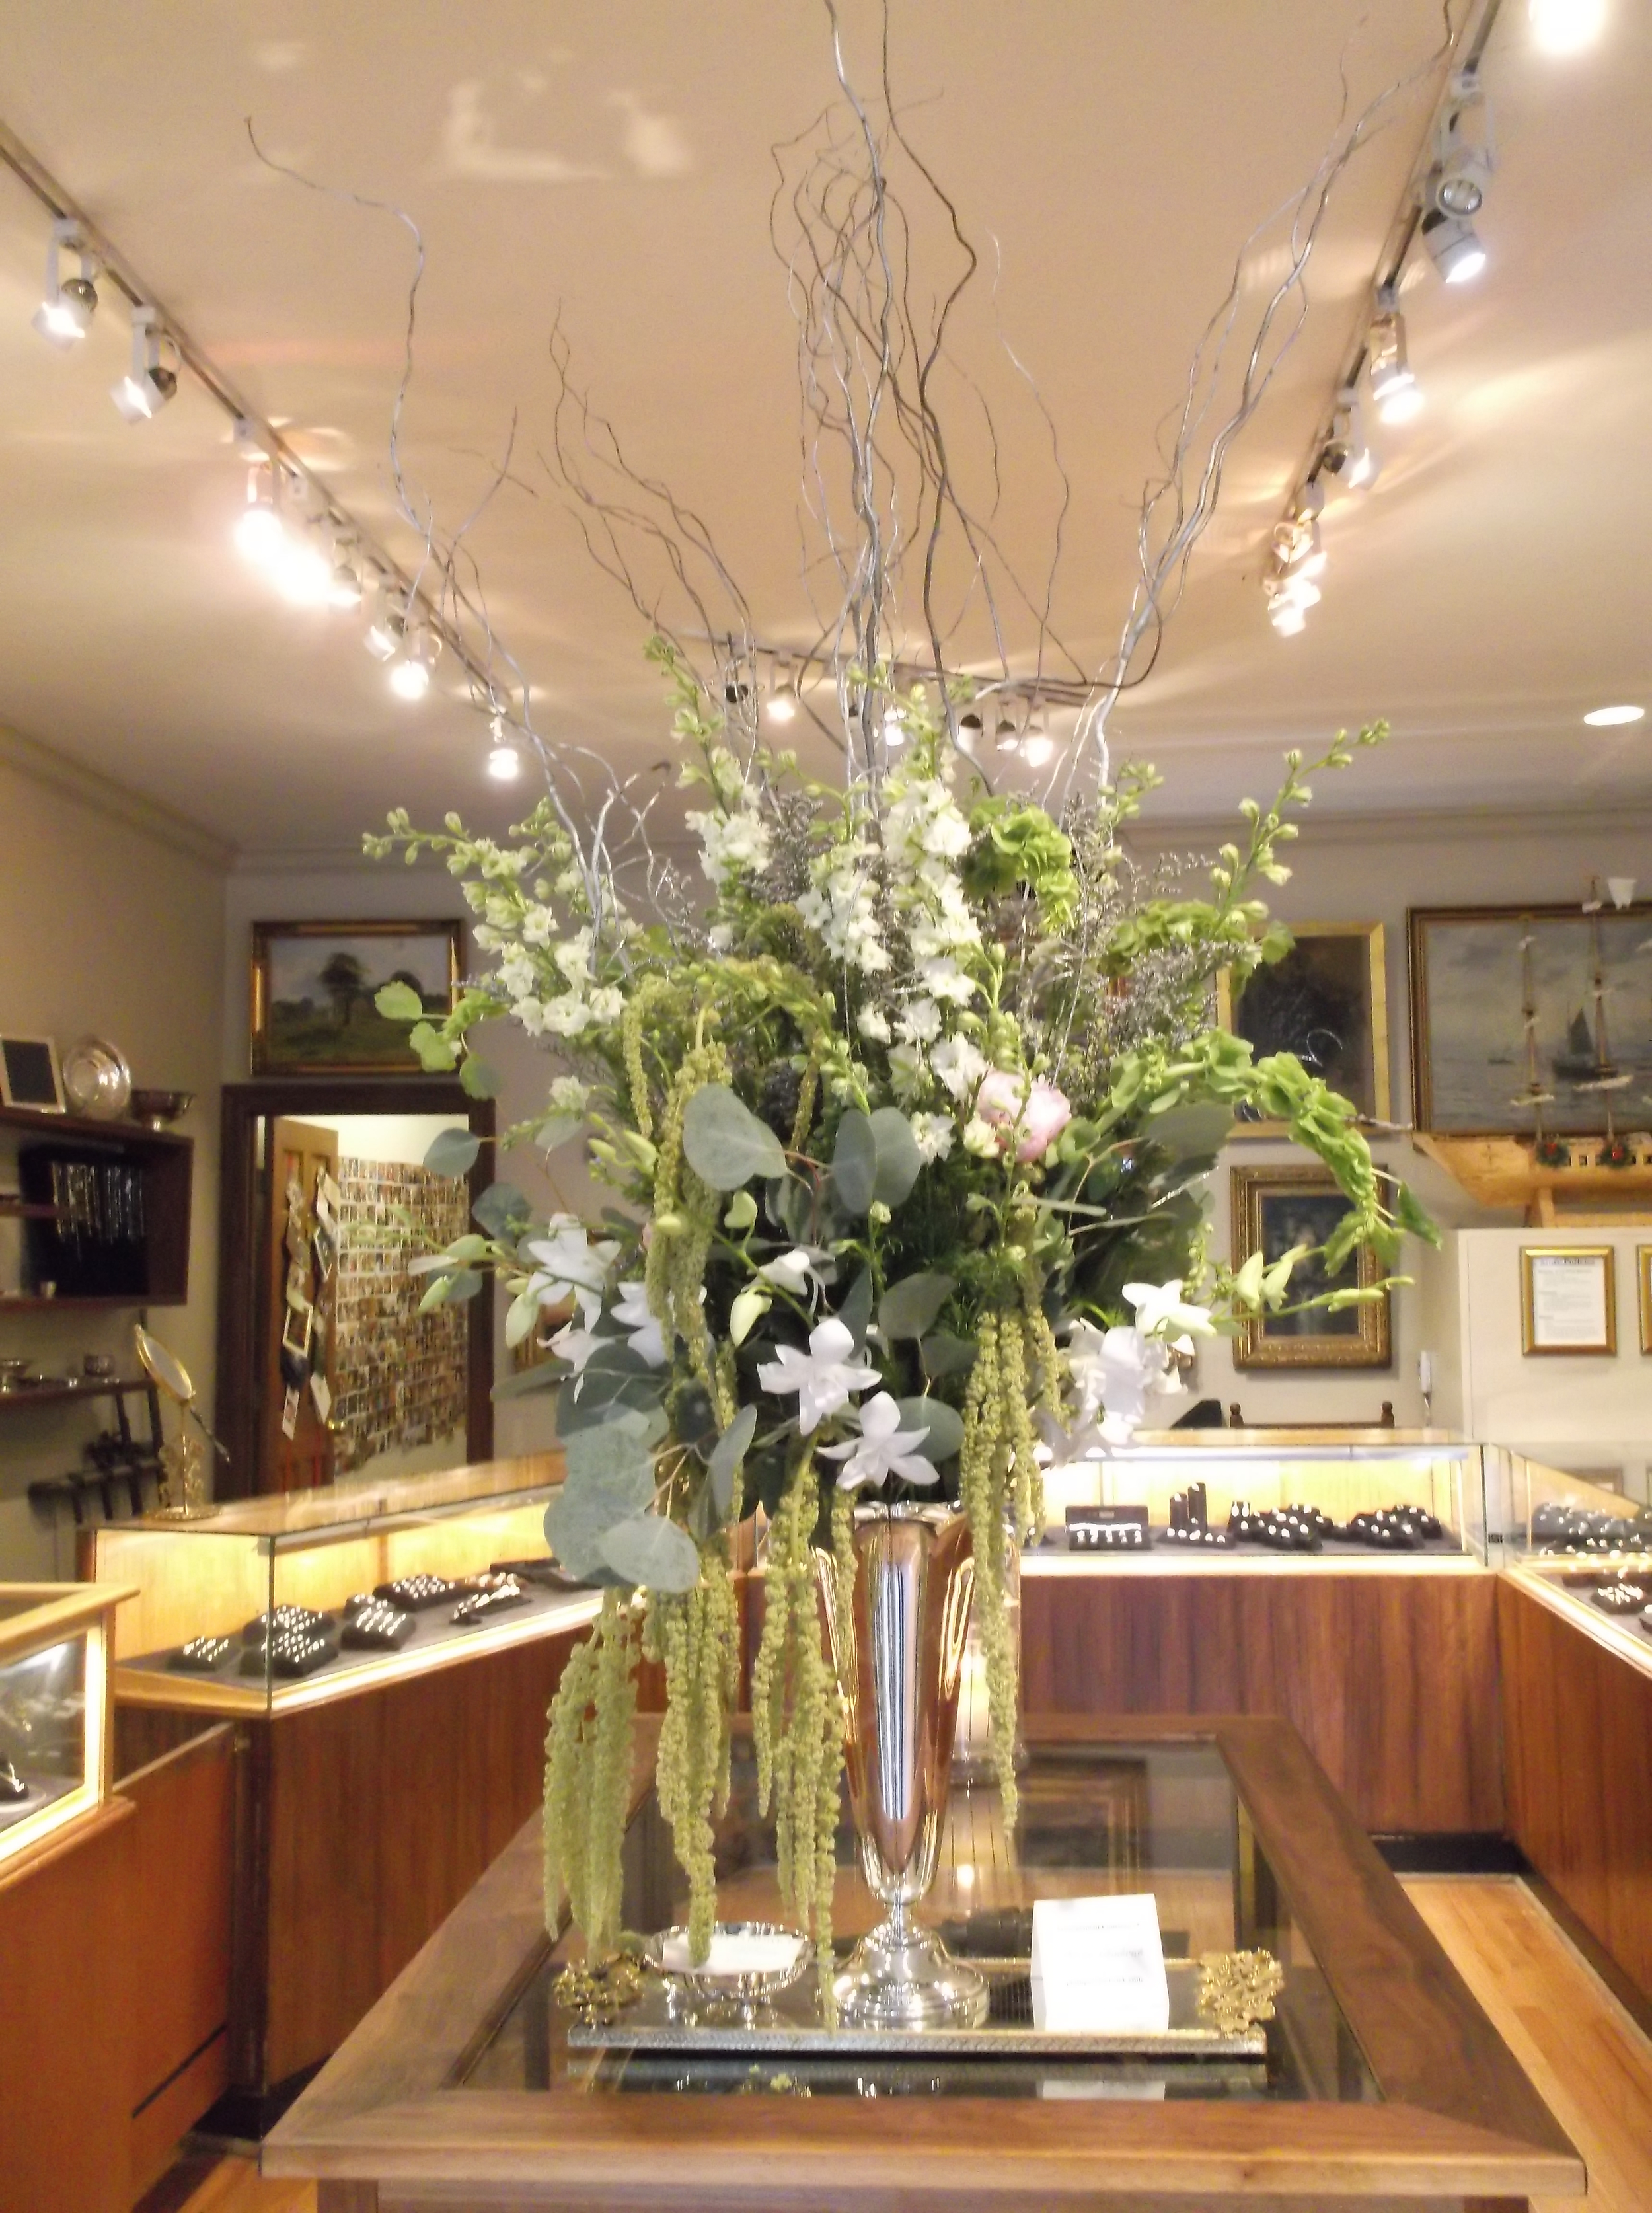 Gorgeous flower arrangements provided by Phillip Chadwick, phillipeschadwick.com